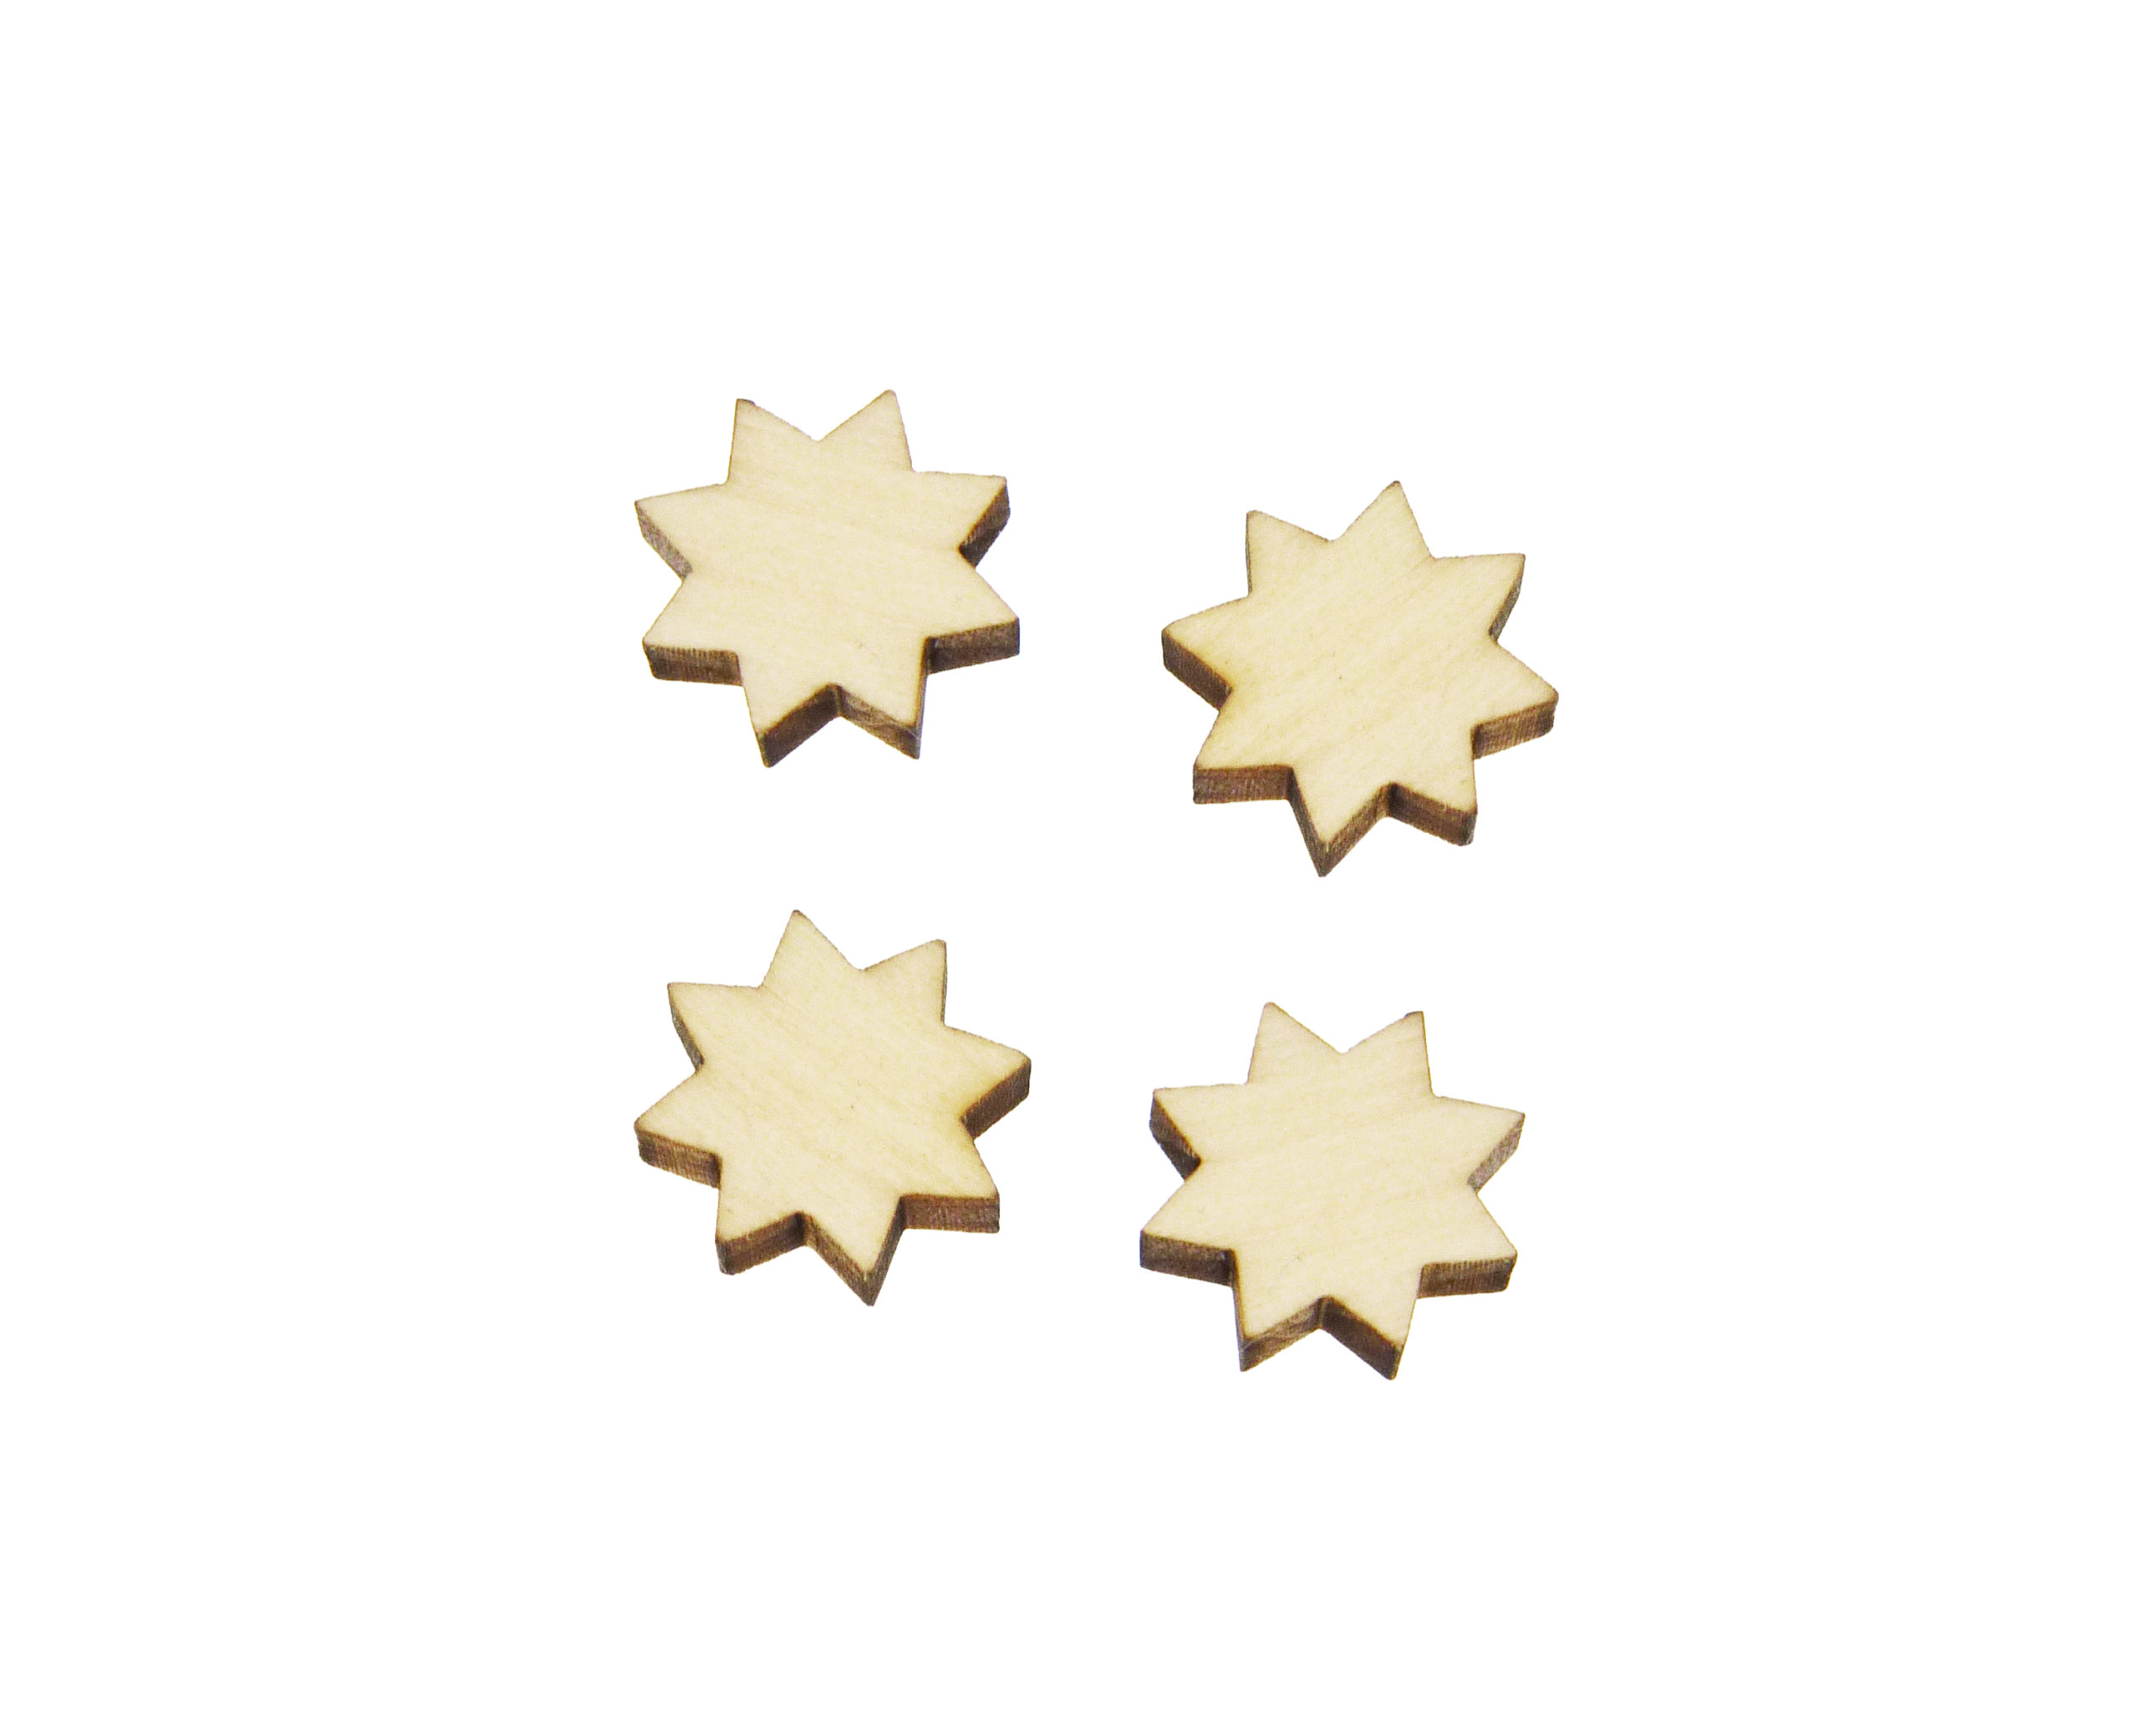 8 Pointed Star 01 scaled